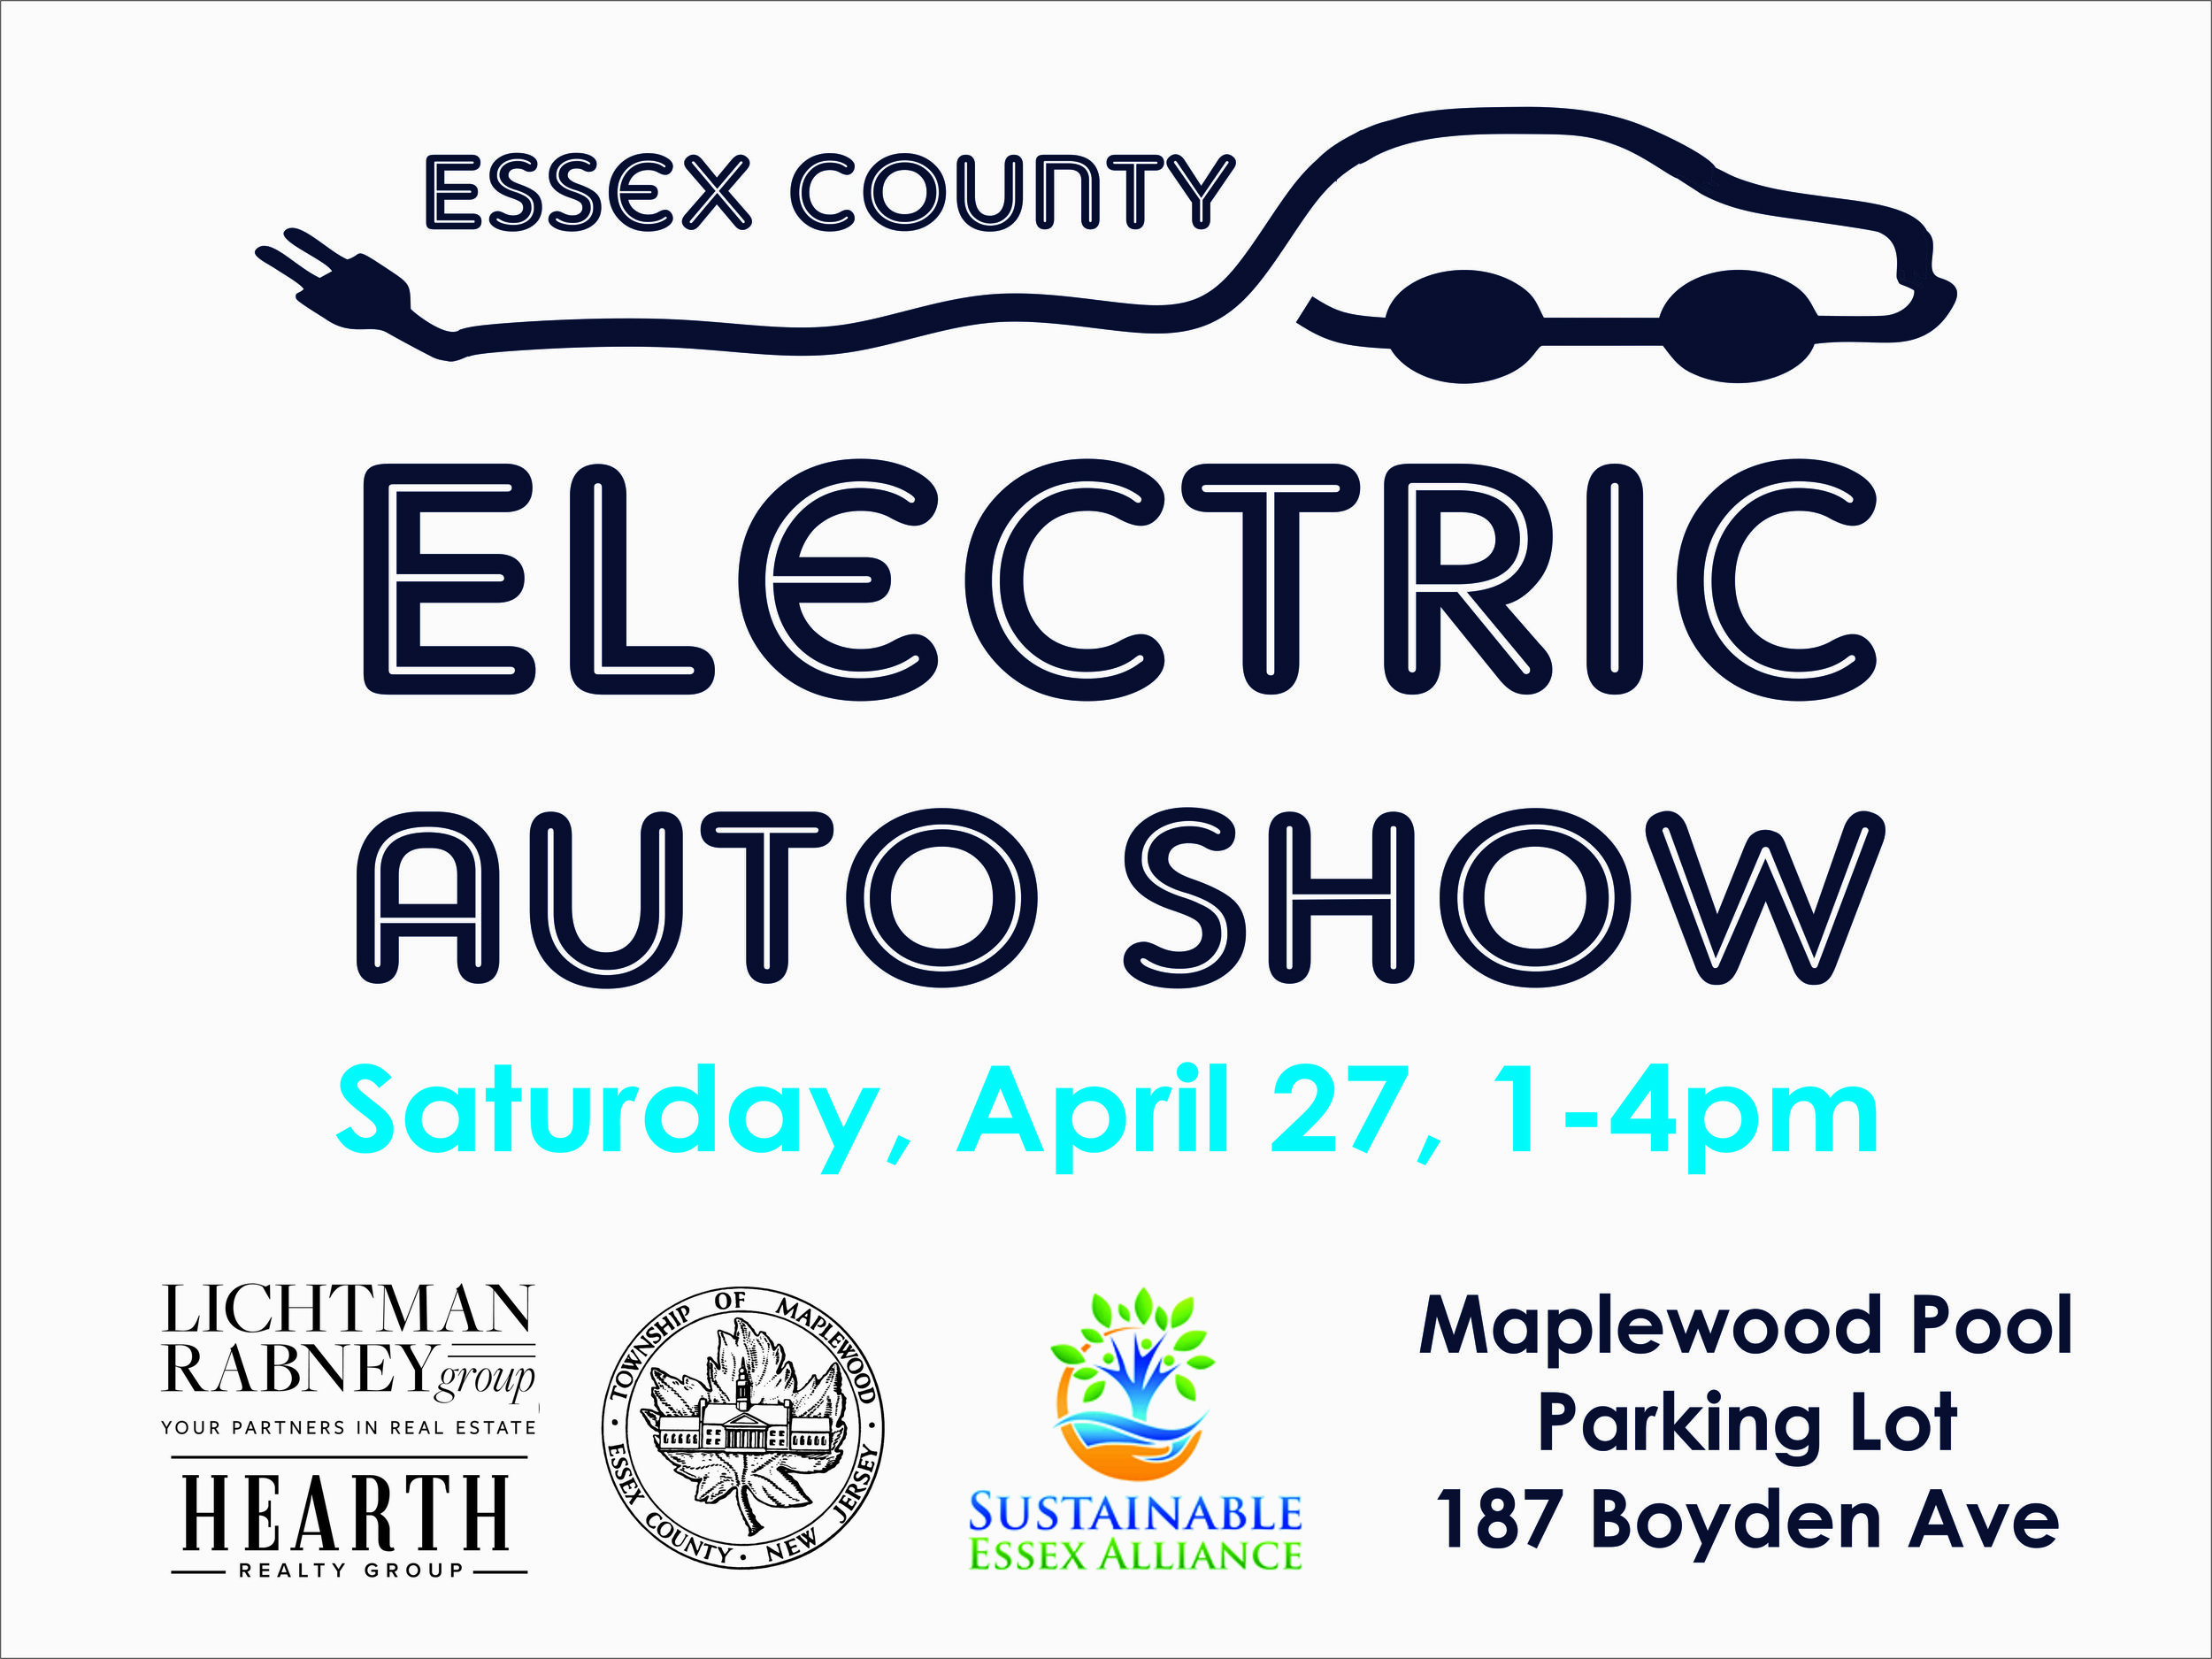 The Sustainable Essex Alliance is hosting a Drive Electric Event on Saturday, April 27, 2019 from 1 pm to 4pm; the rain date is April 28th. The event will be held in the parking lot of the Maplewood Pool located on Boyden Avenue near Springfield Avenue (187 Boyden Avenue).  The goal of Drive Electric Event is to raise awareness of the environmental benefits of electric vehicles and to spread our enthusiasm about electric vehicles as real, plausible, fun and exciting! Car dealers and local owners of electric vehicles will be present to share their EV experience with interested residents in Essex County. This event is organized by Maplewood Green Team in partnership with the Sustainable Essex Alliance.  Another feature of the event, Maplewood's new hybrid police vehicle will be on display. This hybrid police vehicle uses an estimated 60 percent of the fuel of the non-hybrid version, and the battery allows the vehicle to run communications and temperature controls without idling. The manufacturer estimates that the average carbon emission reduction for this vehicle is 27,421lbs of CO2 per year.  If you are interested in bringing a EV Car to show, ESVP here:  https://driveelectricearthday.org/event.php?eventid=1726&fbclid=IwAR0jvjDIDskSXhod495H5PXuSari3UGJ9s_ZIPArsLRP5ONDQPhv8KO0vM8